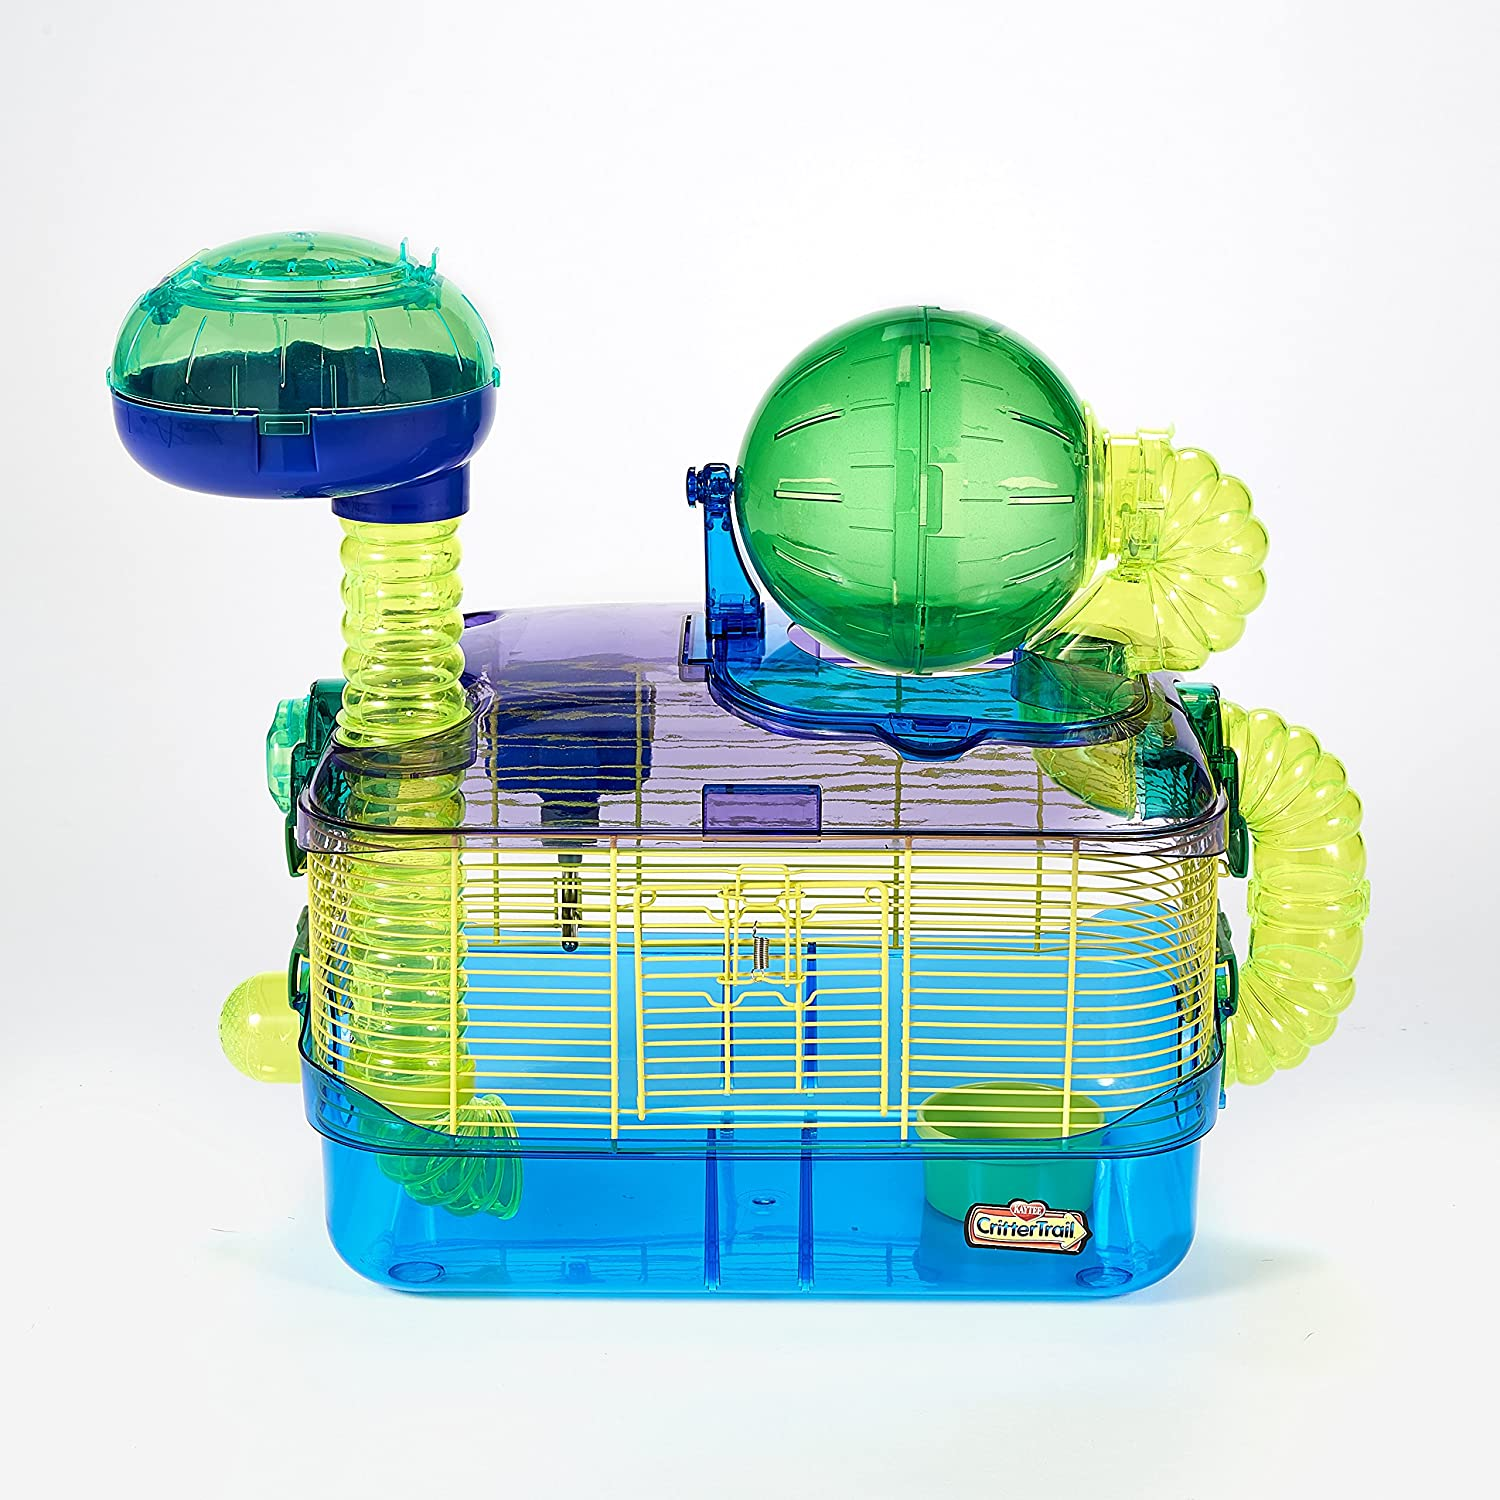 Superpet Kaytee Cages Critter Trail Fun-nel Connectable Colourful Plastic Tubing 100079233